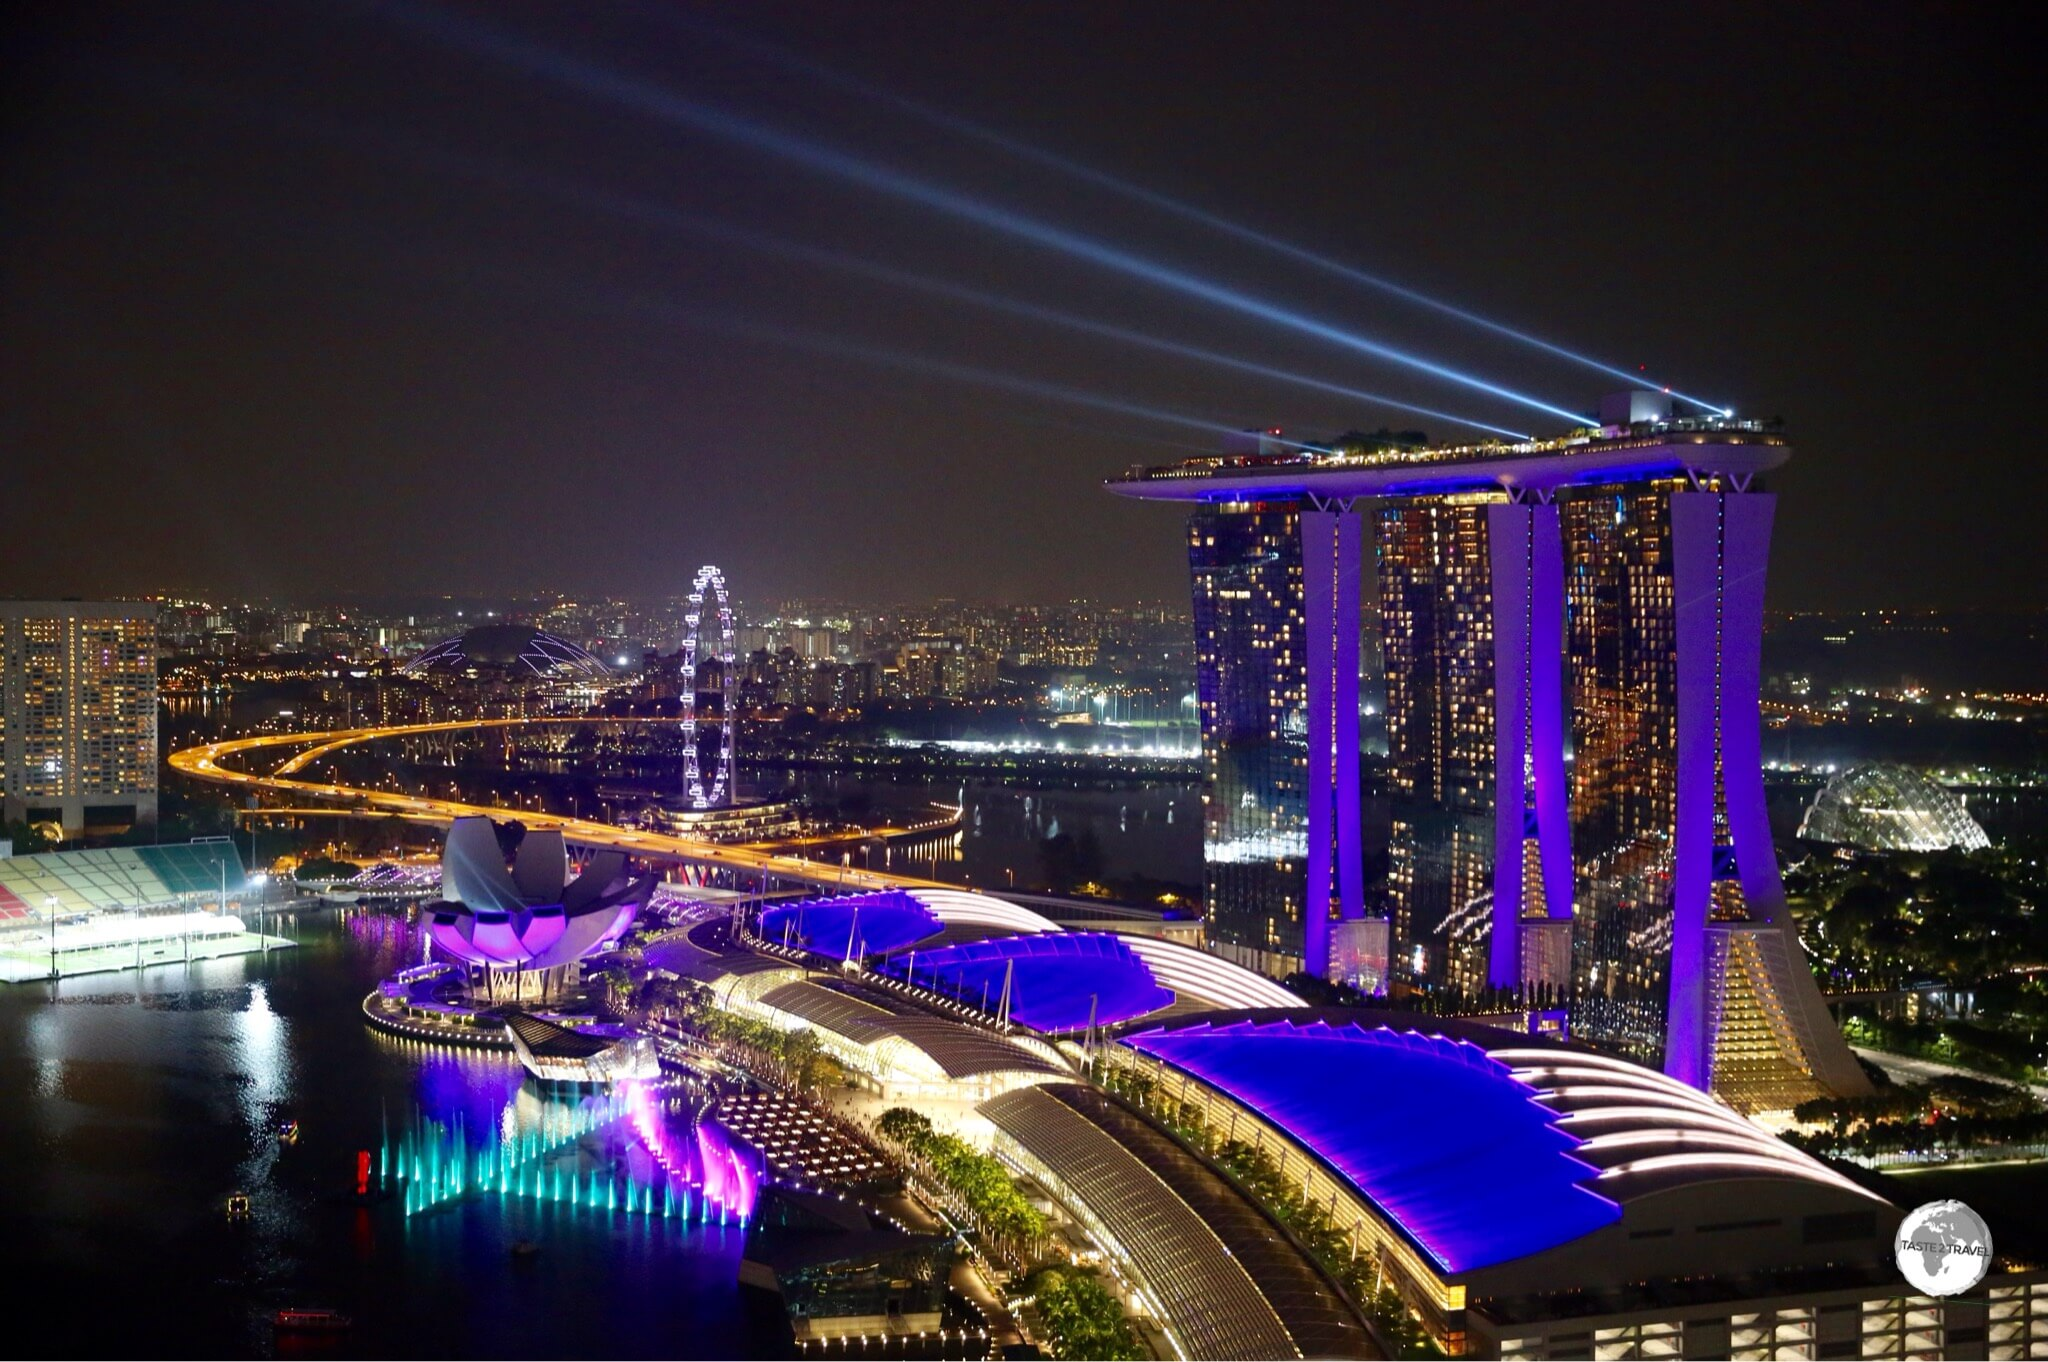 Marina Bay Sands is a hotel, casino and shopping complex located in which city?